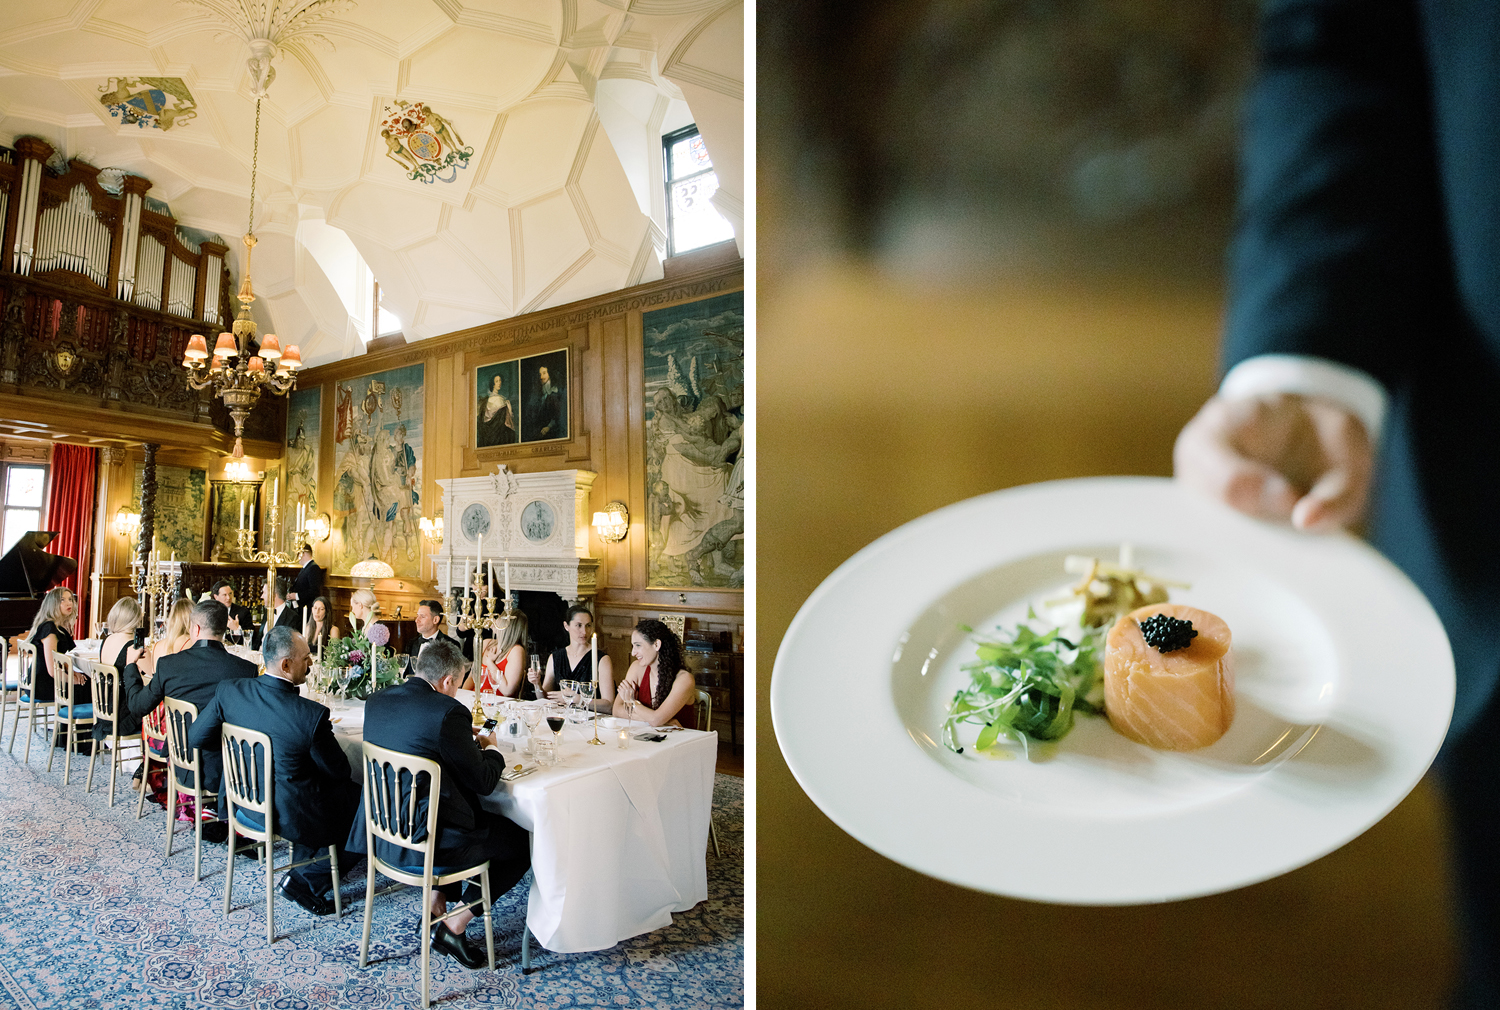 Dinner time at this black tie surprise party at Fyvie Castle in Scotland